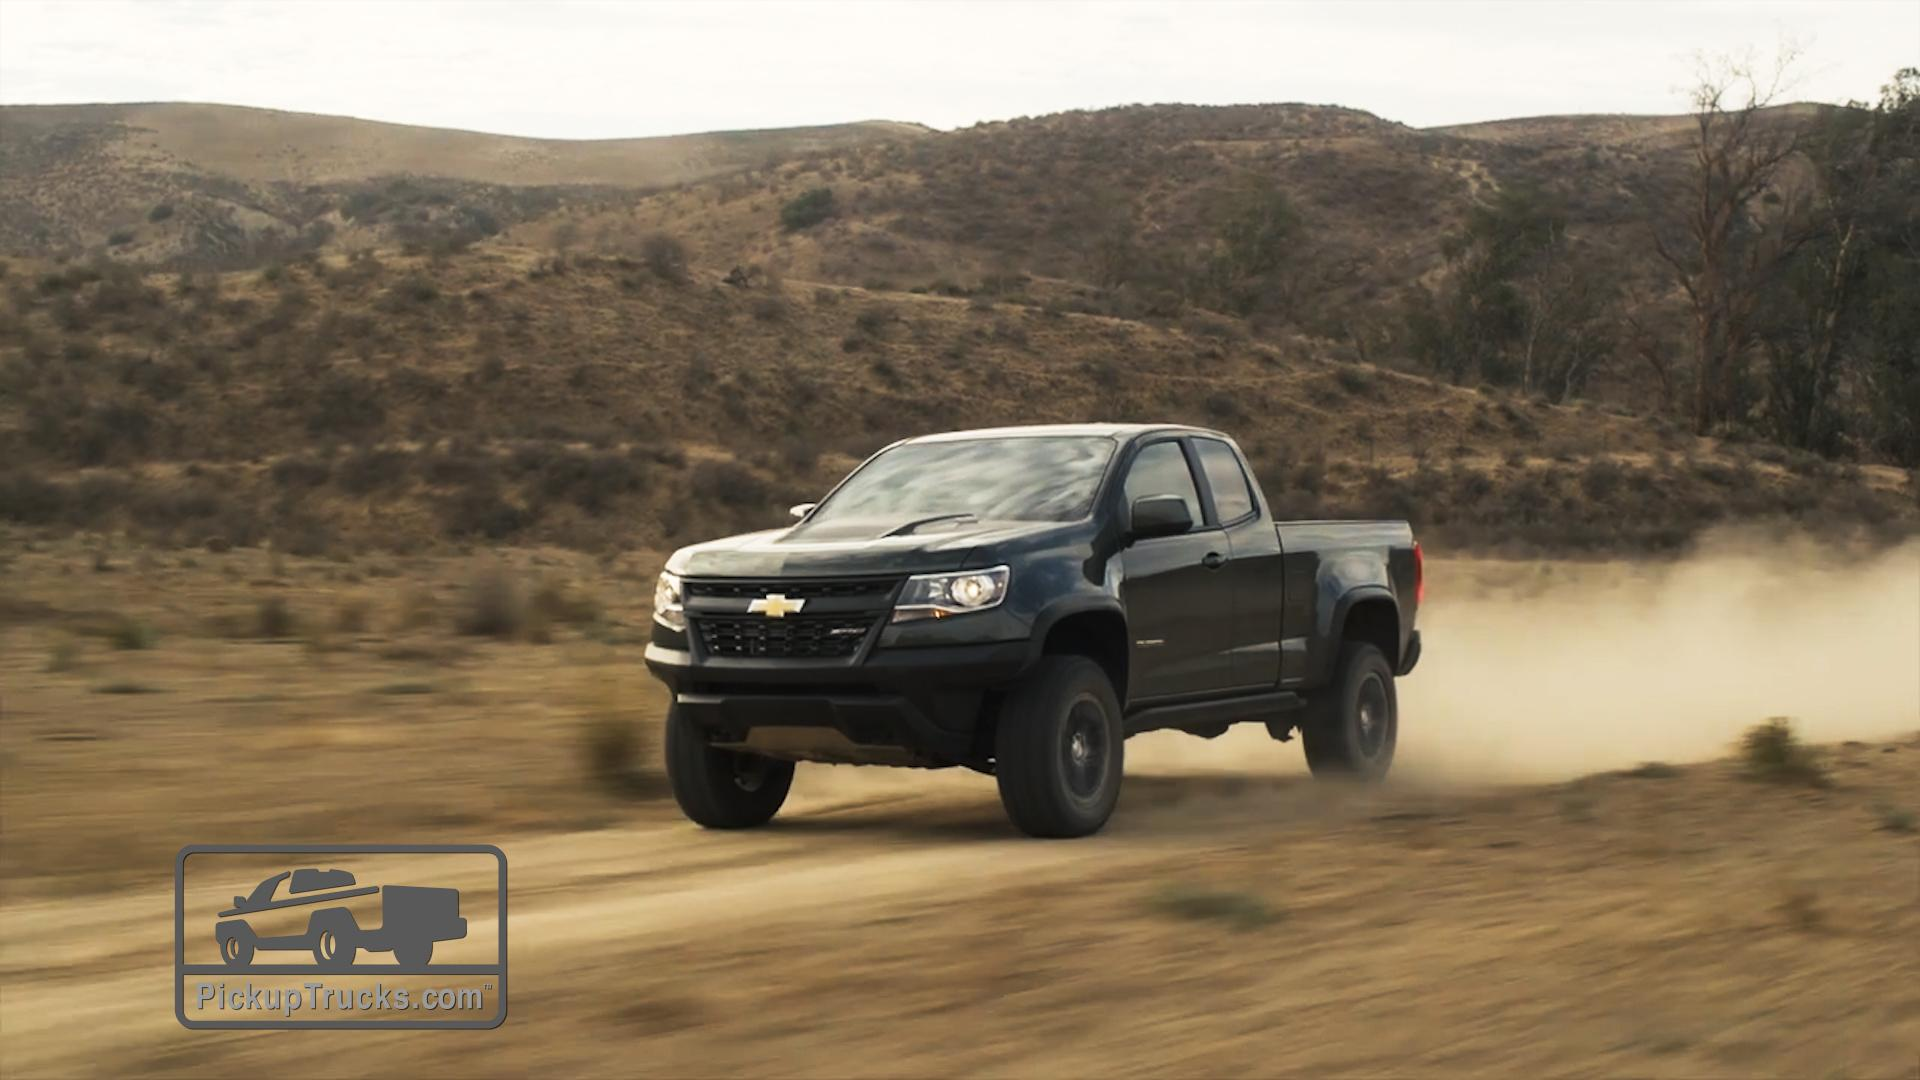 2017 chevrolet colorado zr2 review first impressions video. Black Bedroom Furniture Sets. Home Design Ideas